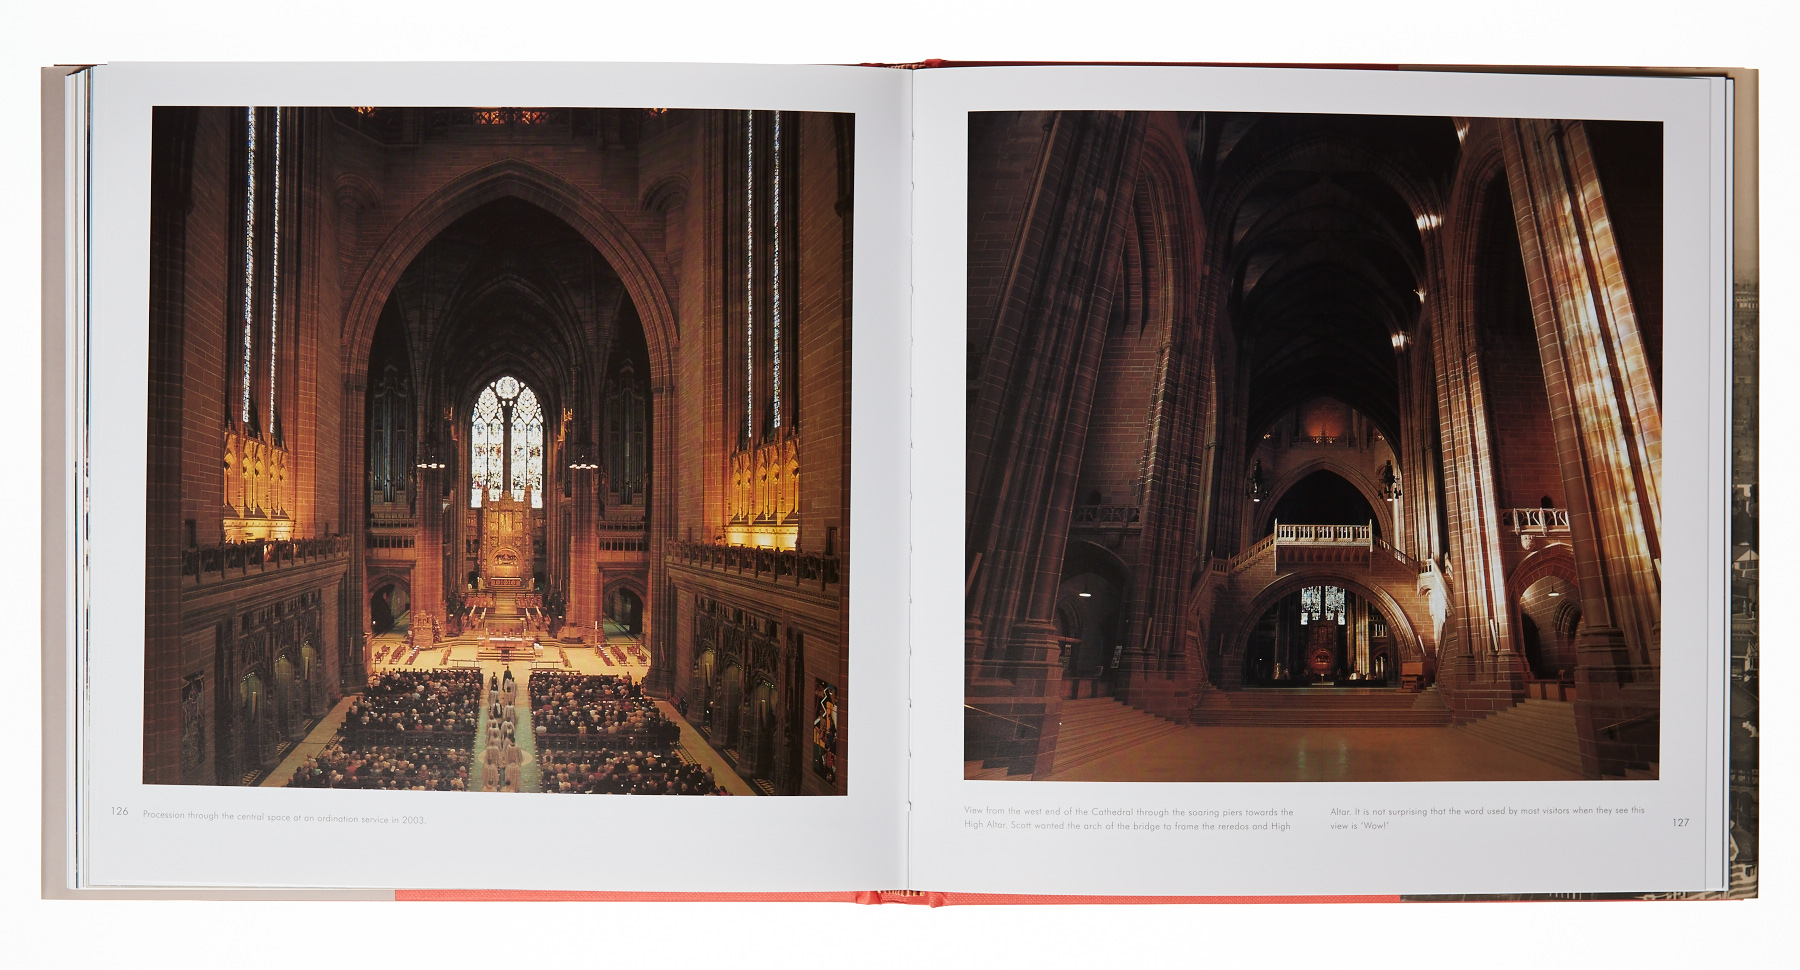 liverpool-cathedral-book-page-126.jpg